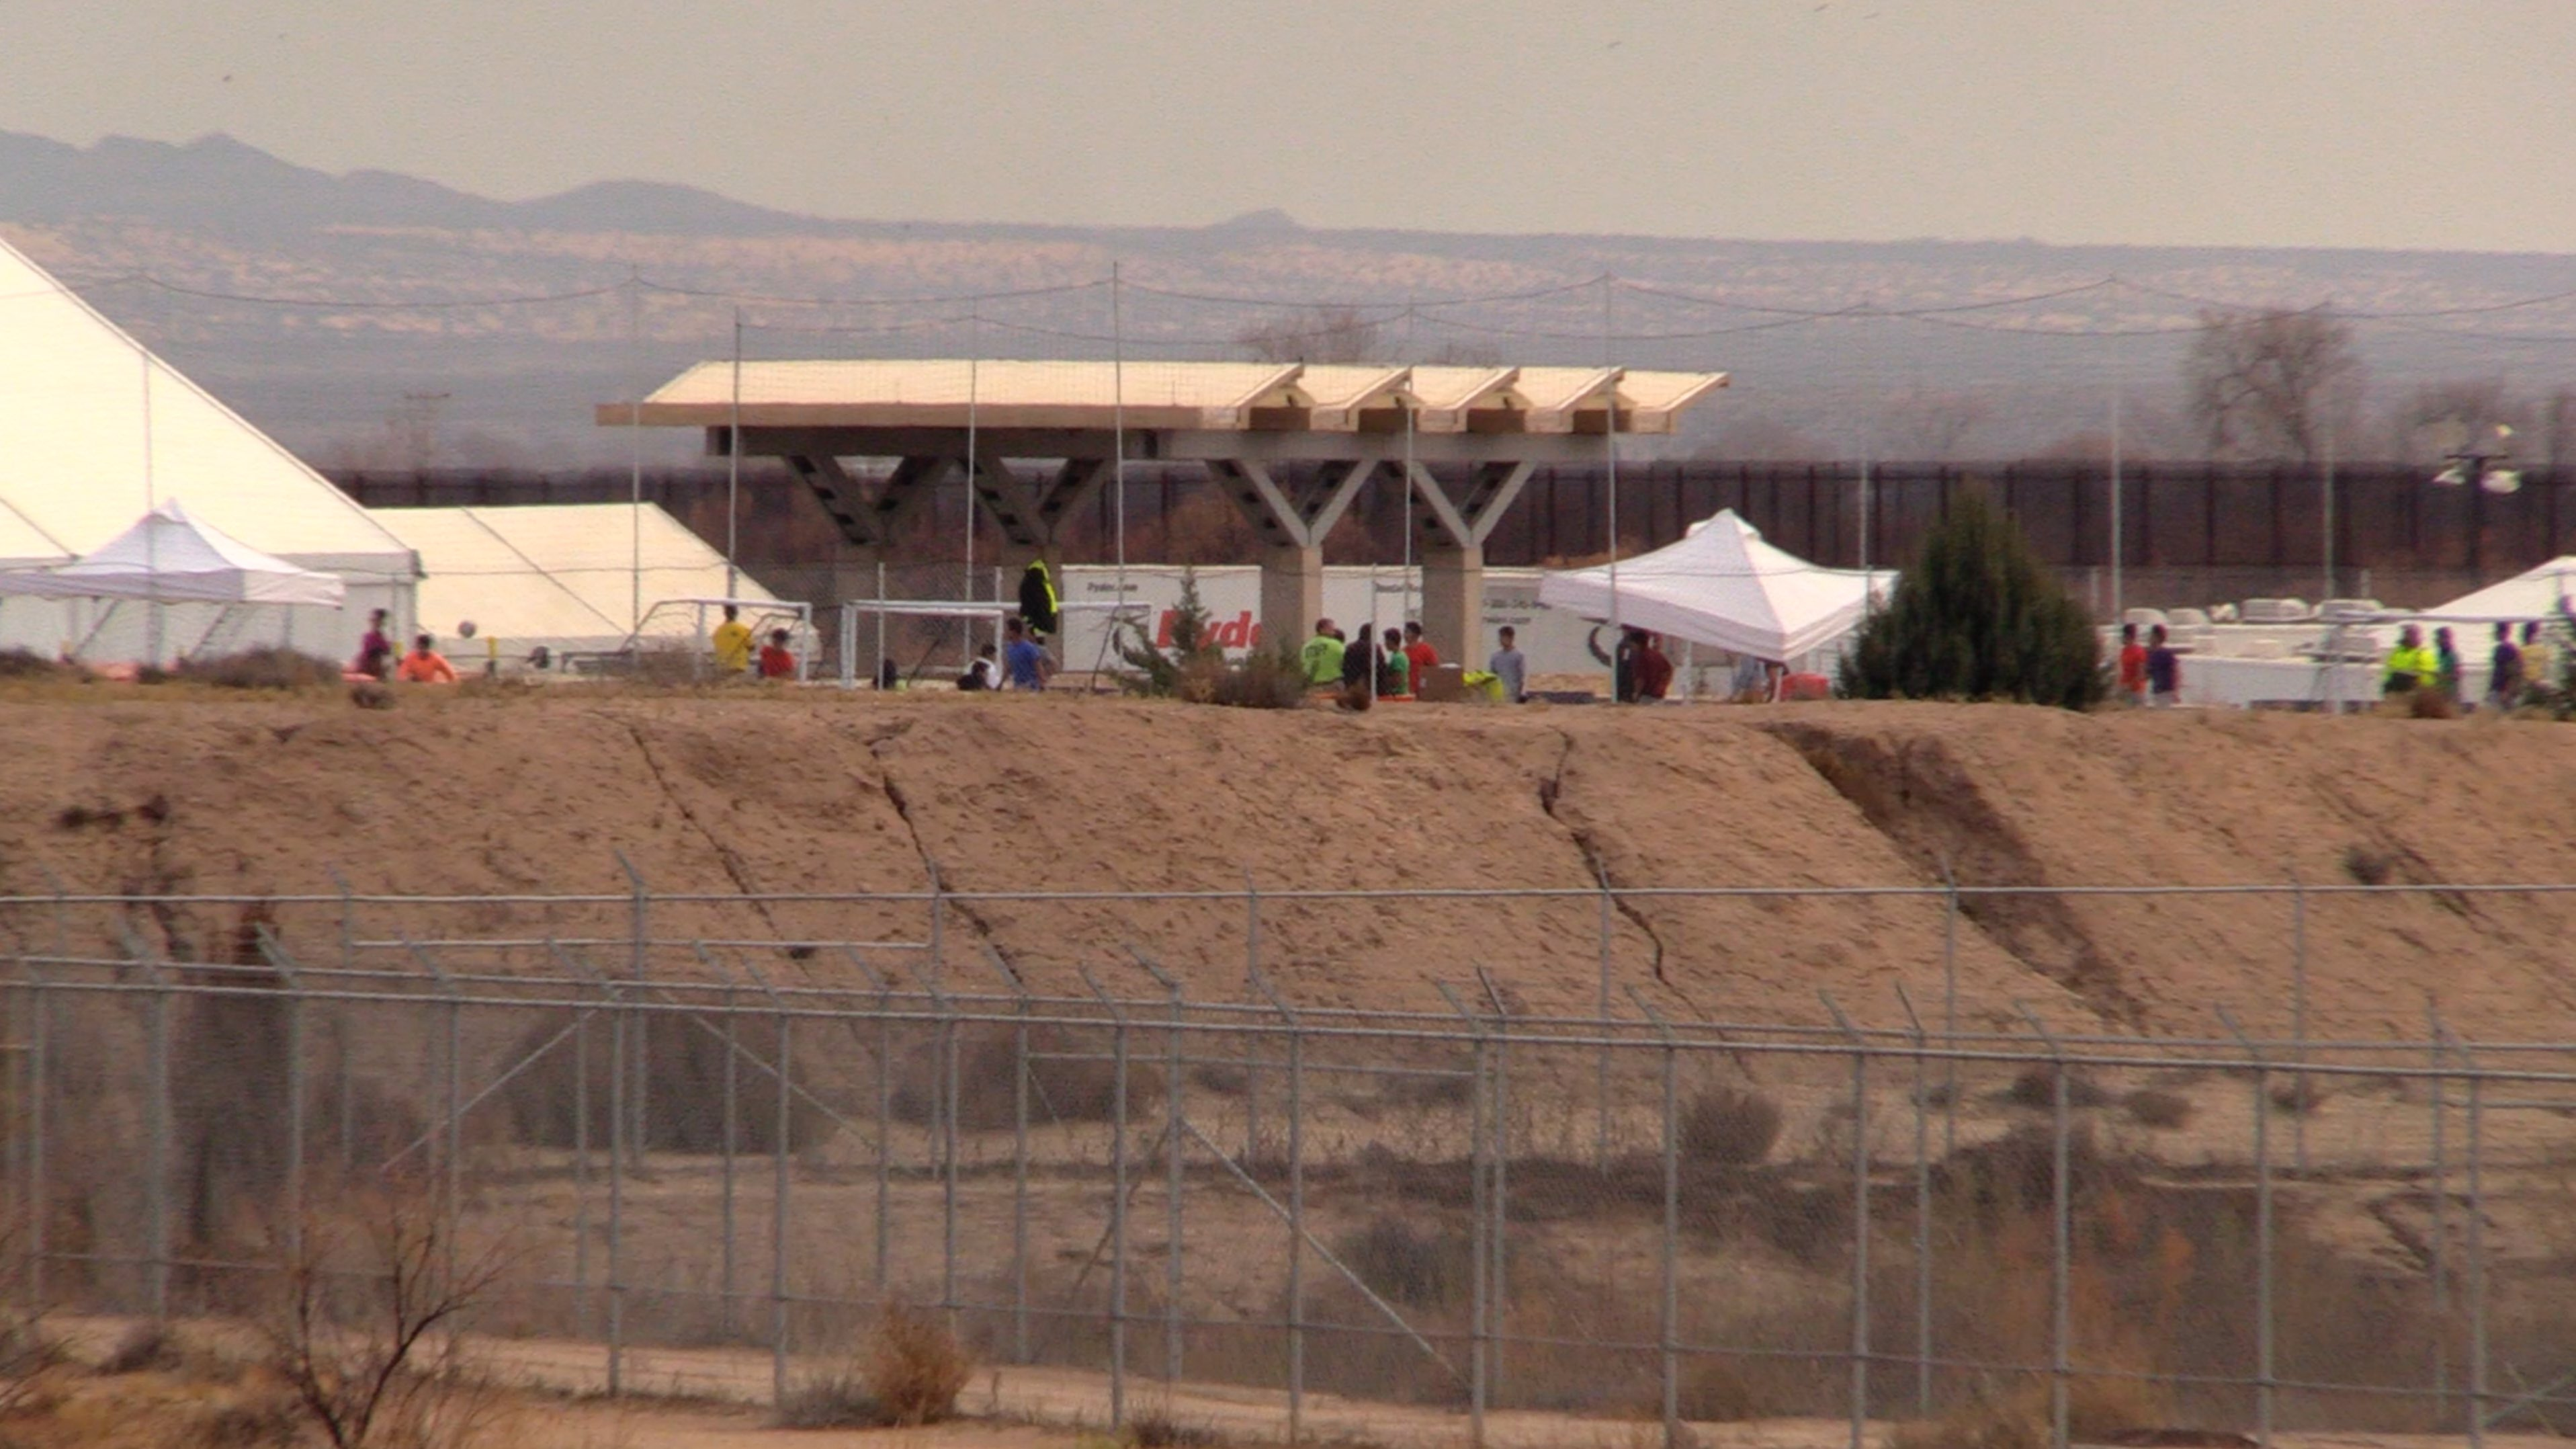 Last Child Leaves Tornillo Tent City